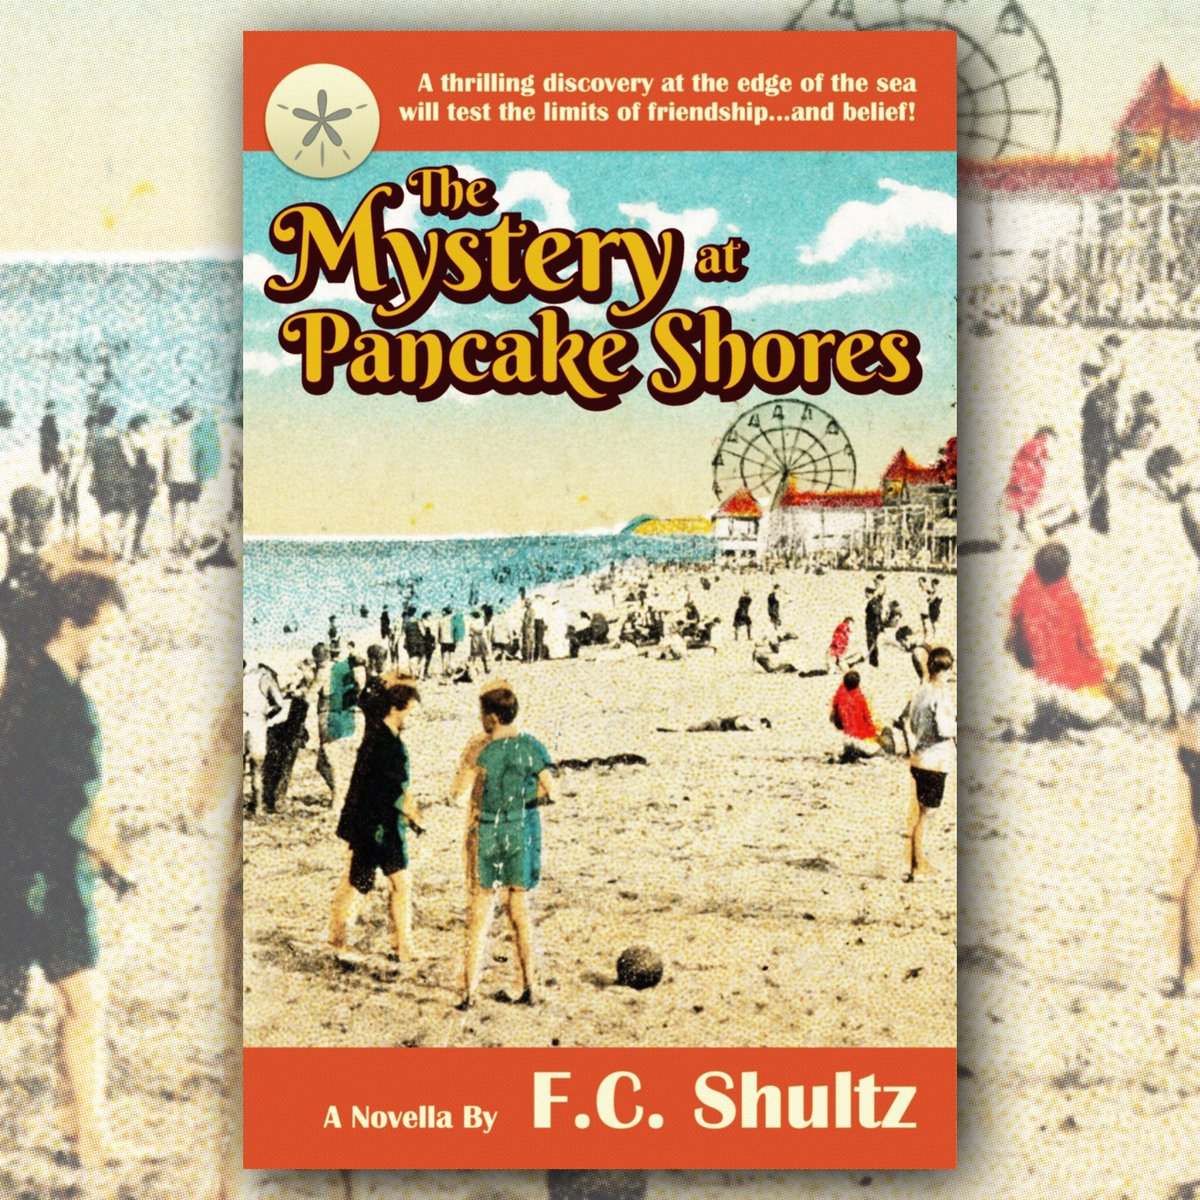 Copy of The Mystery at Pancake Shores